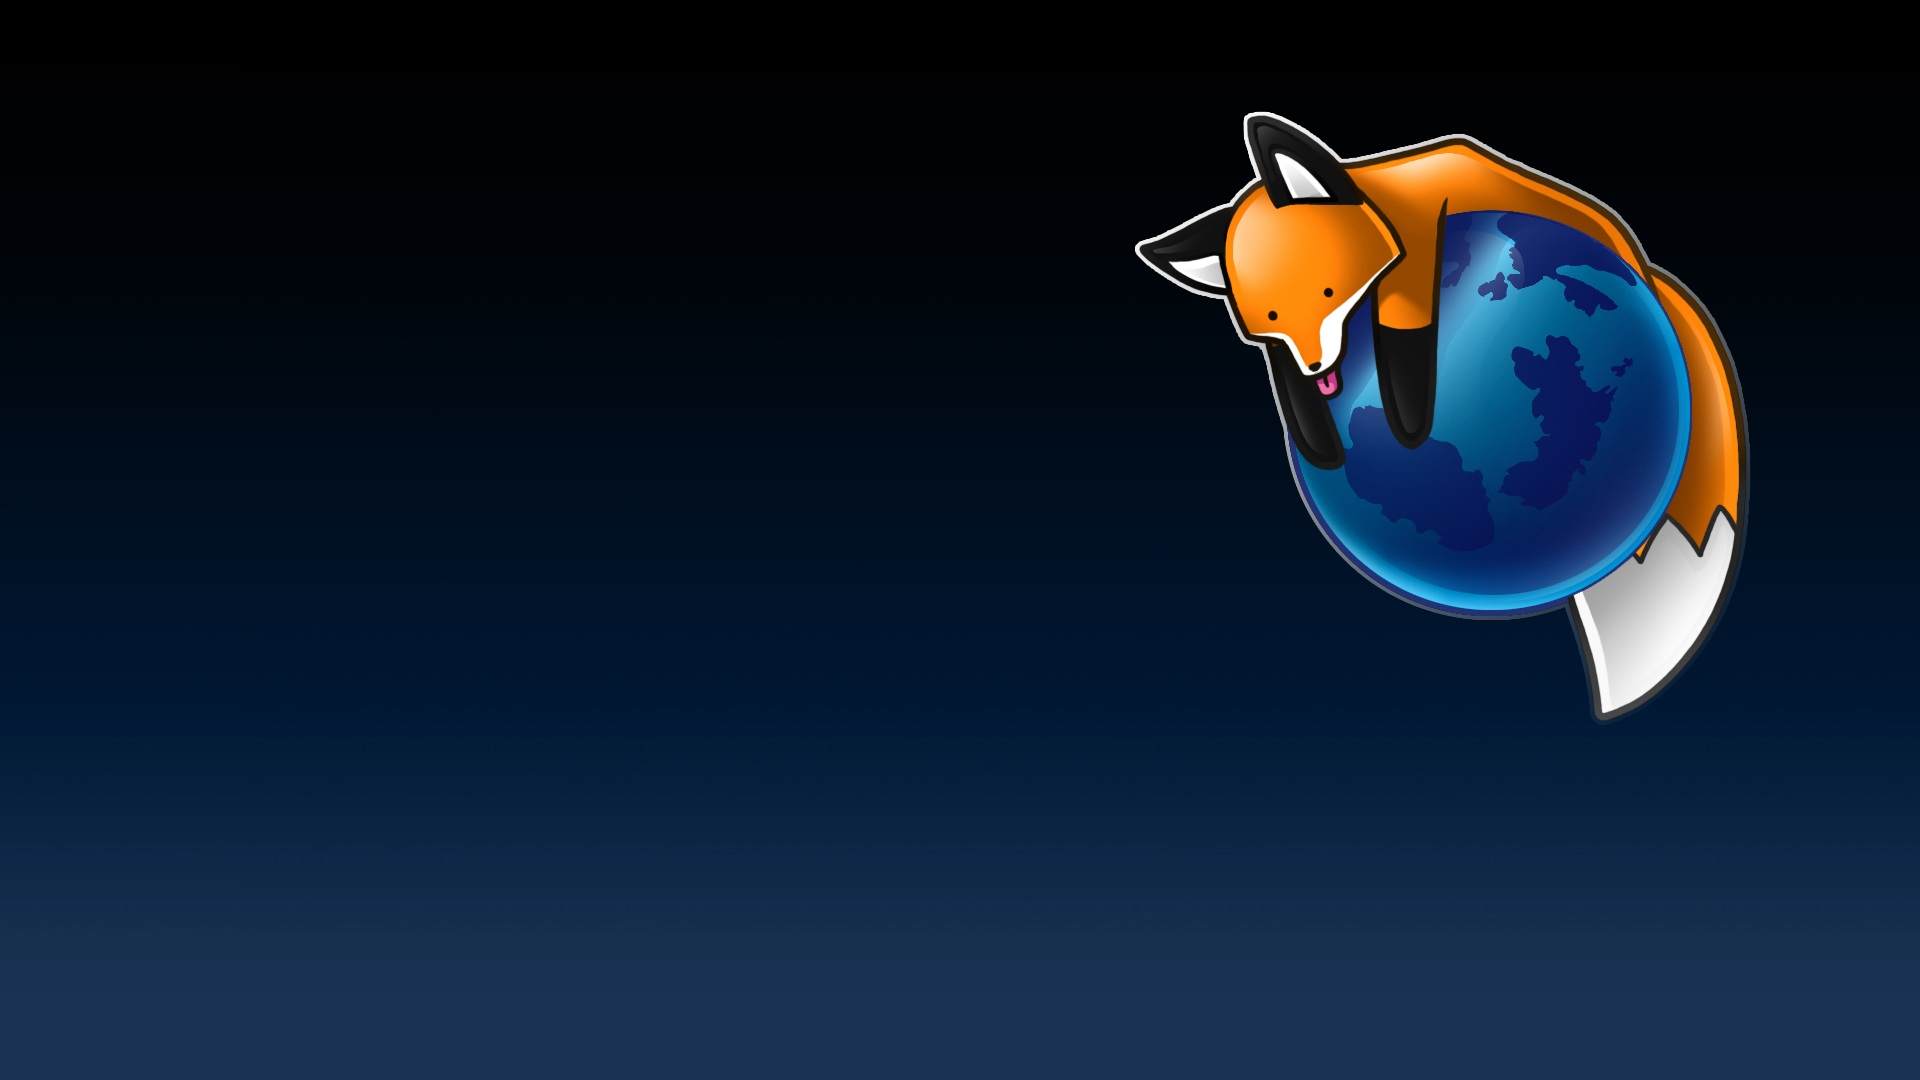 FireFox browser icon on dark blue gradient